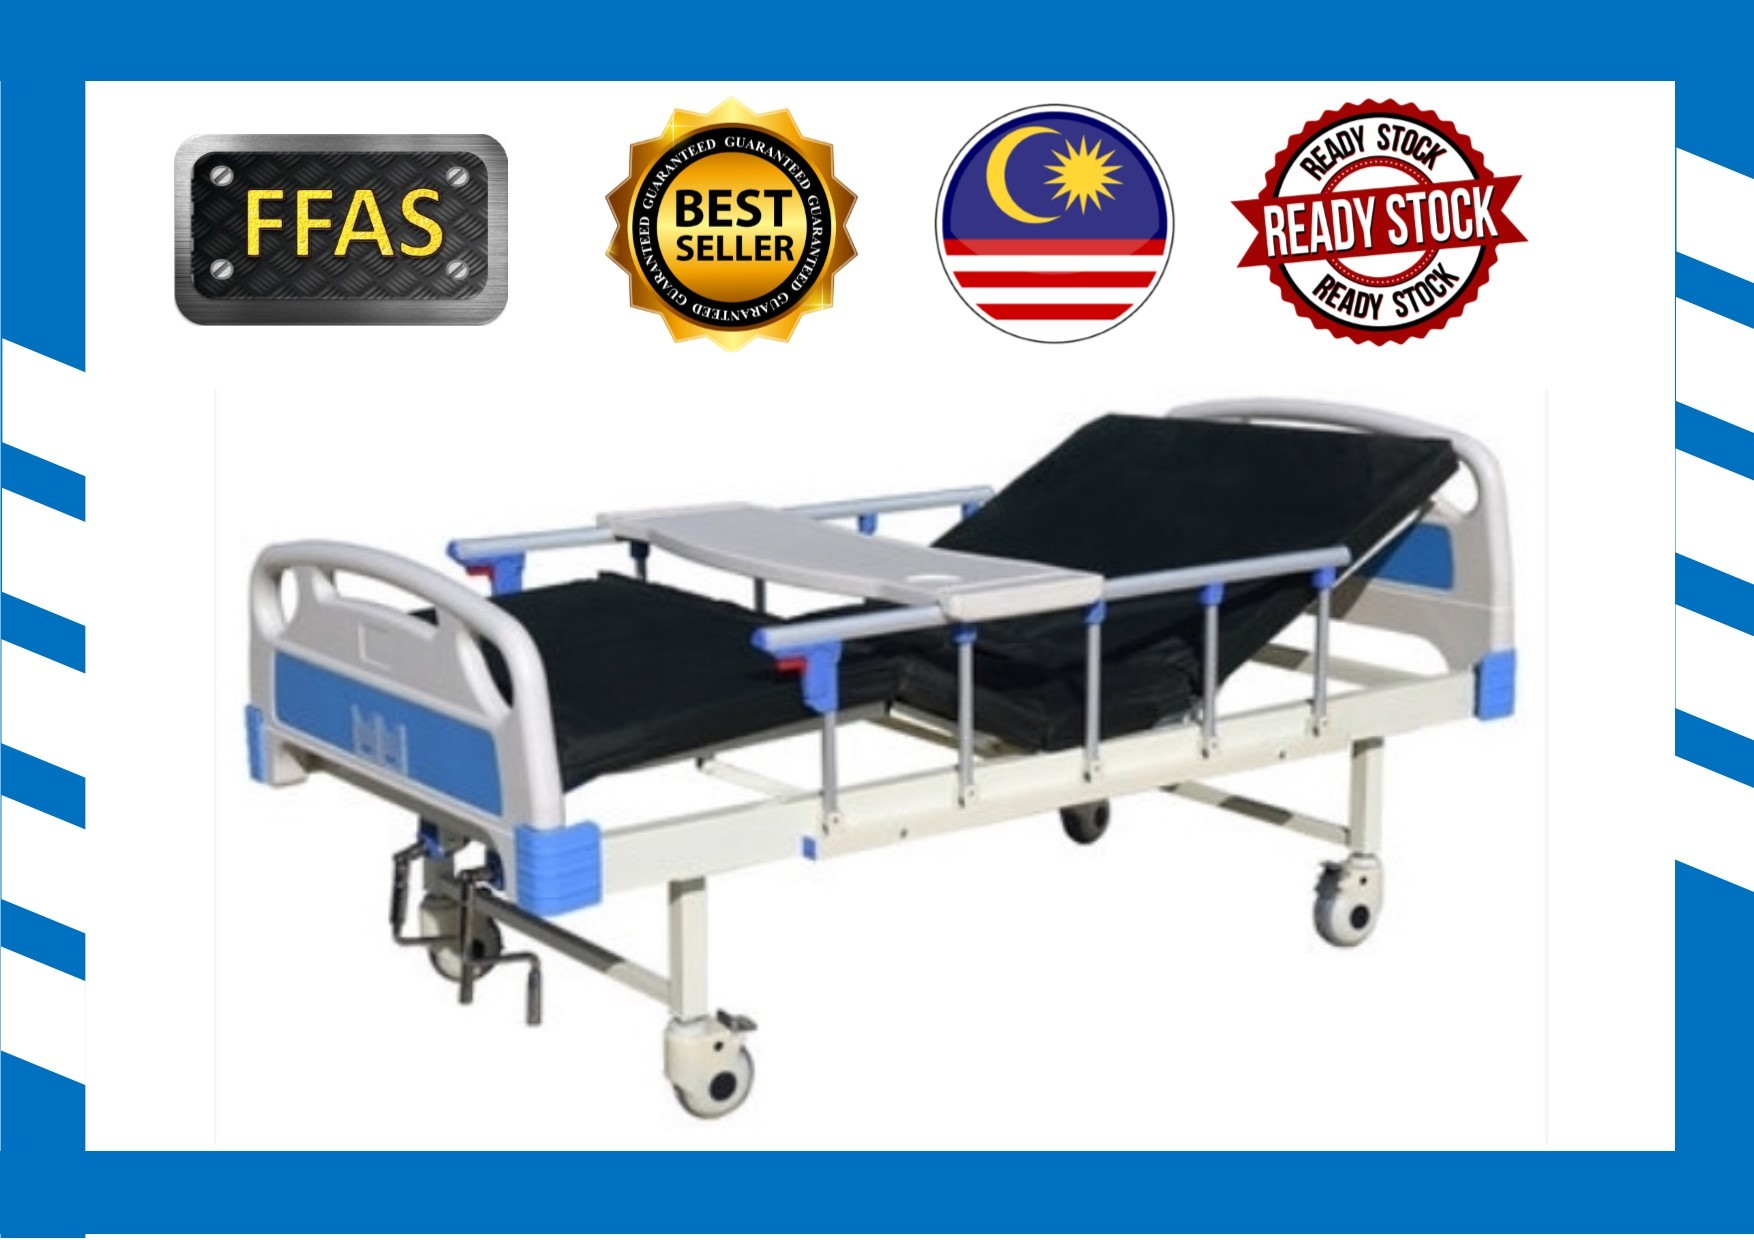 ffascare products frame.jpg